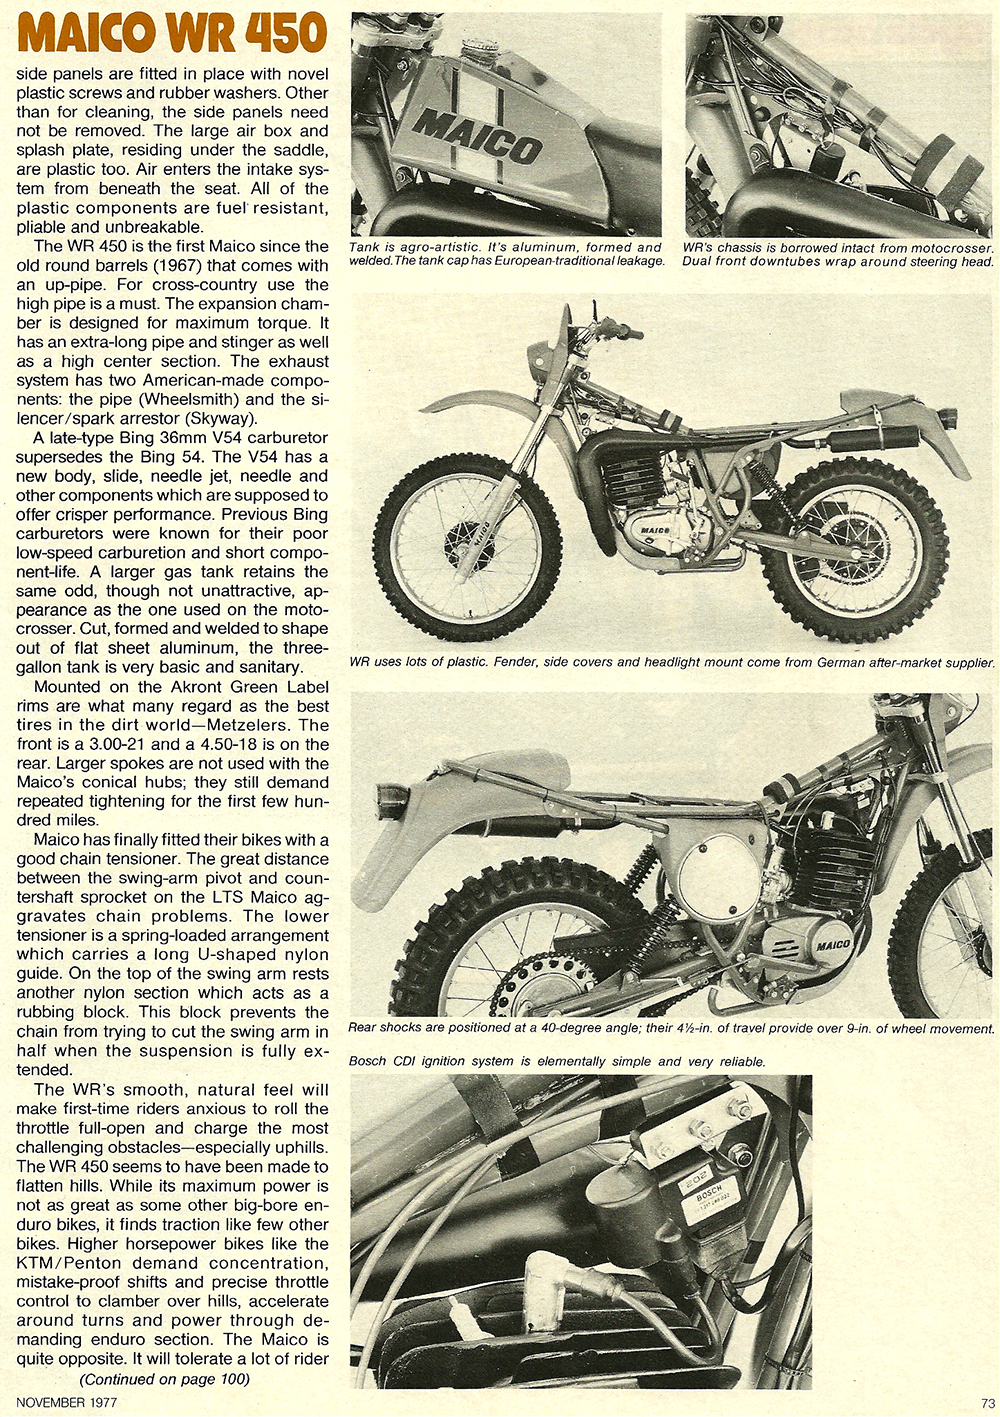 1977 Maico WR450 Cross Country XC road test 6.jpg